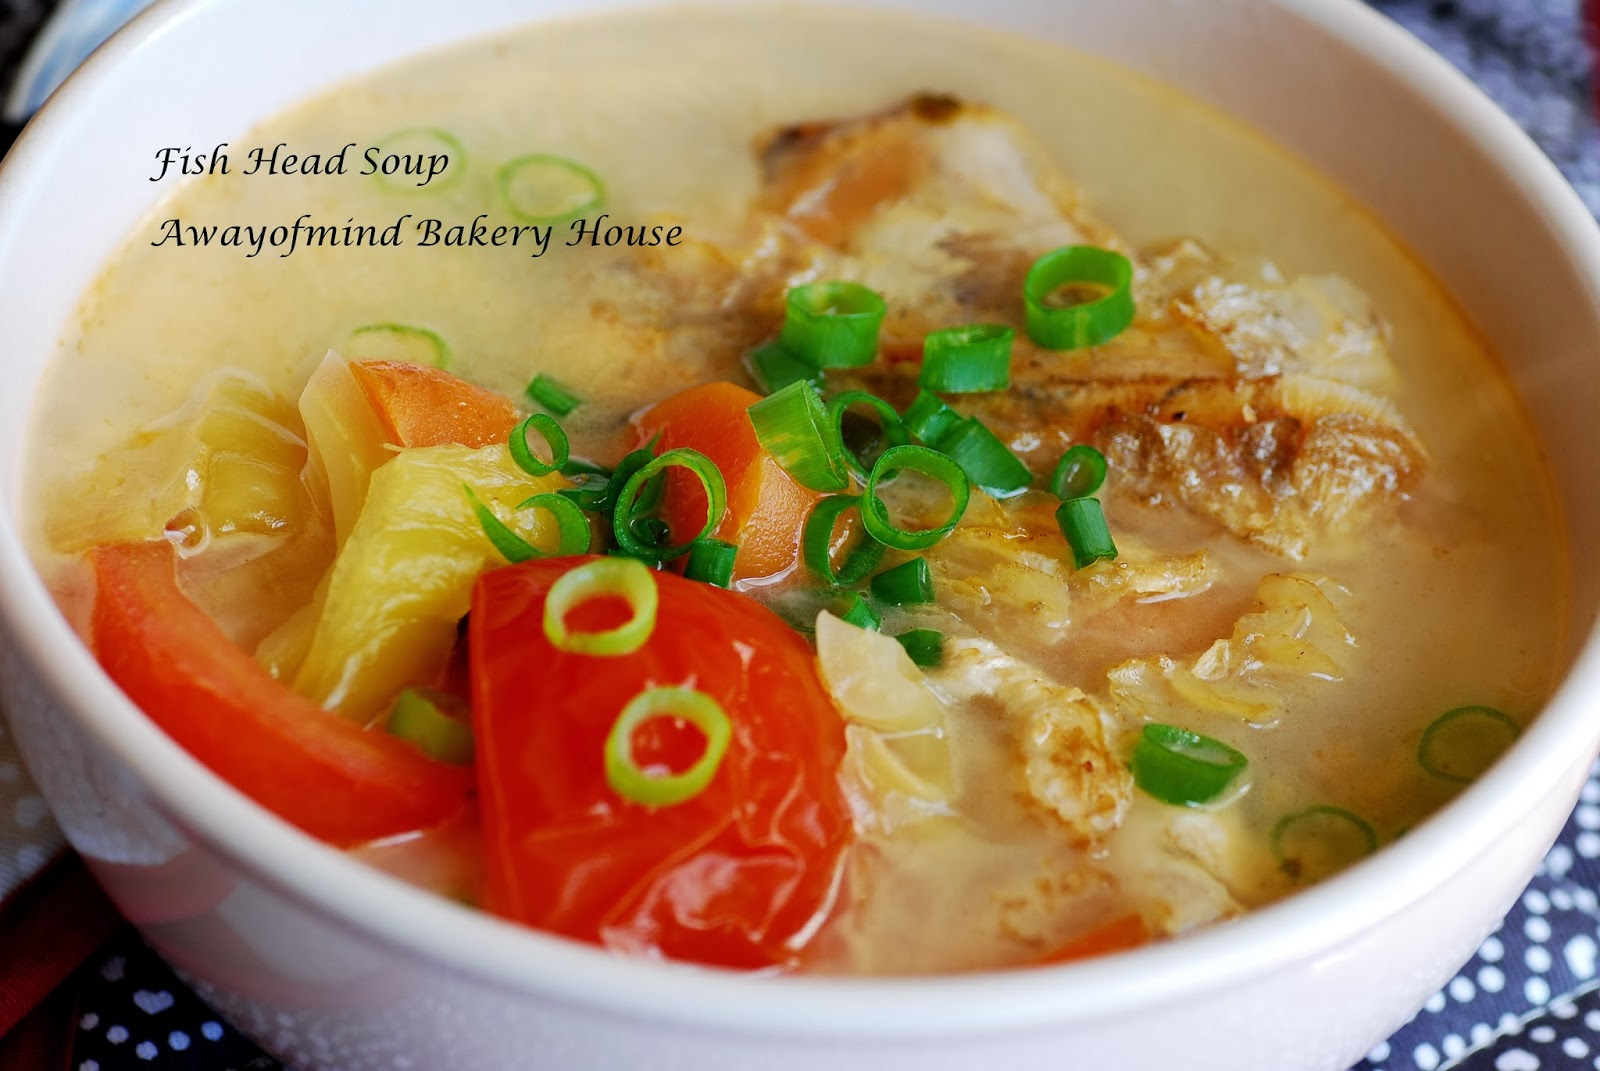 Awayofmind bakery house fish head soup 0 for Fish head recipe